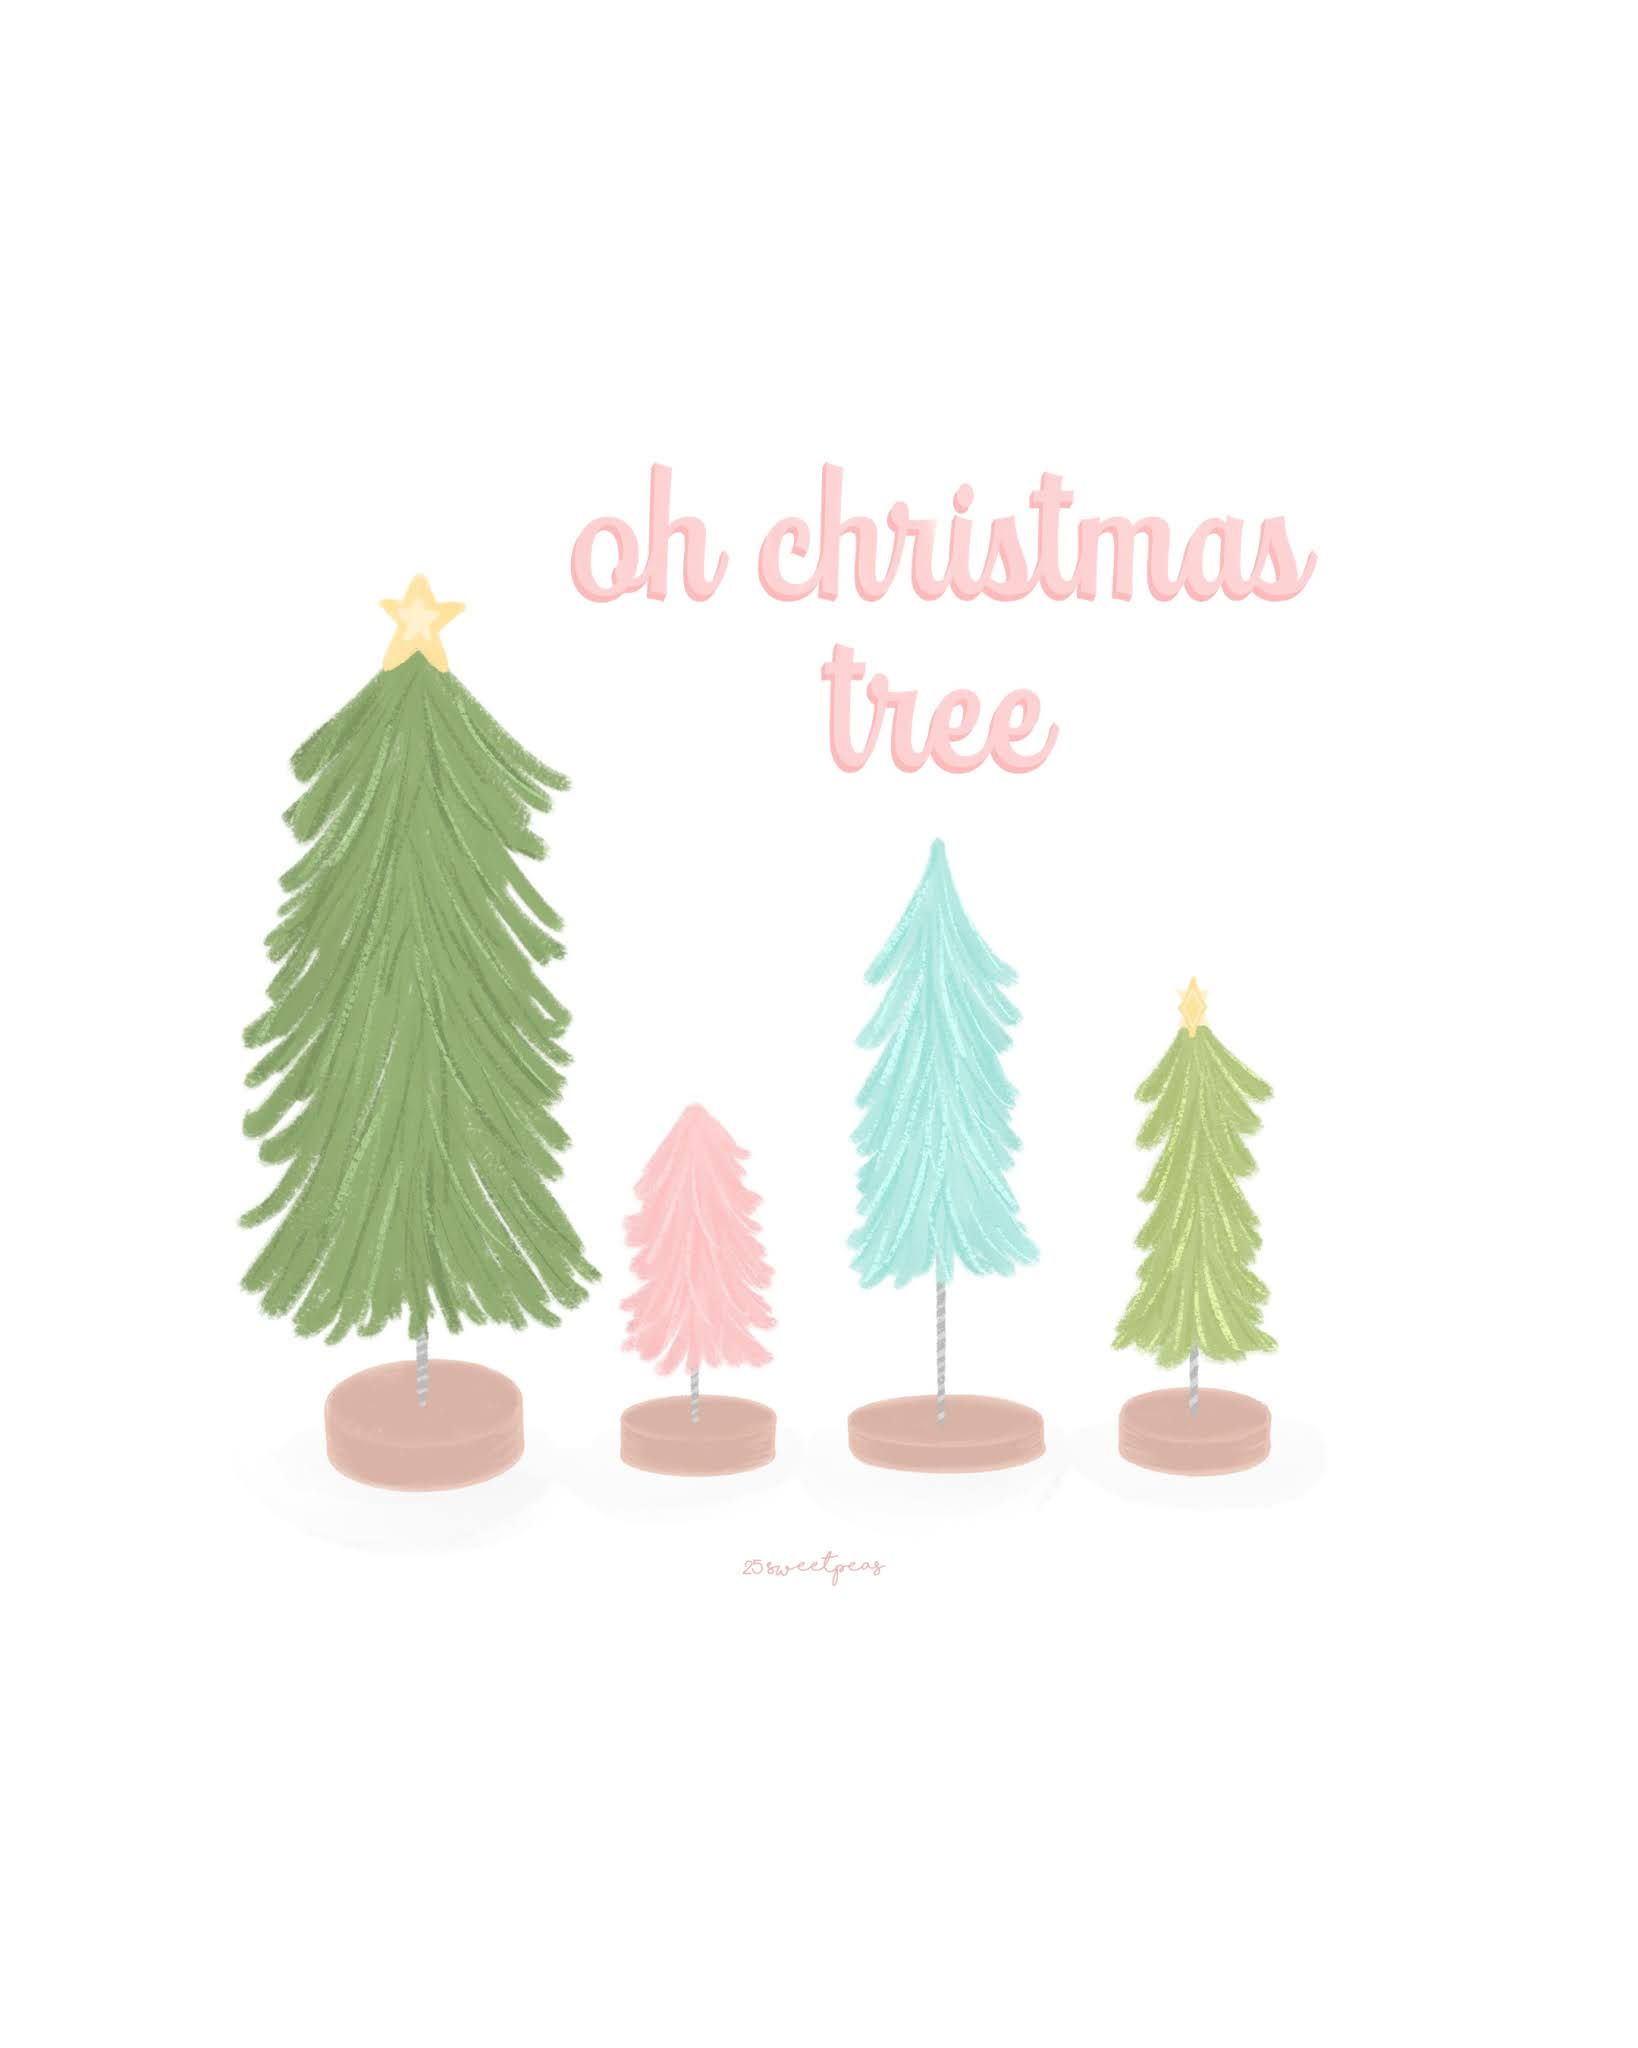 Oh Christmas Tree Illustration by 25 Sweetpeas